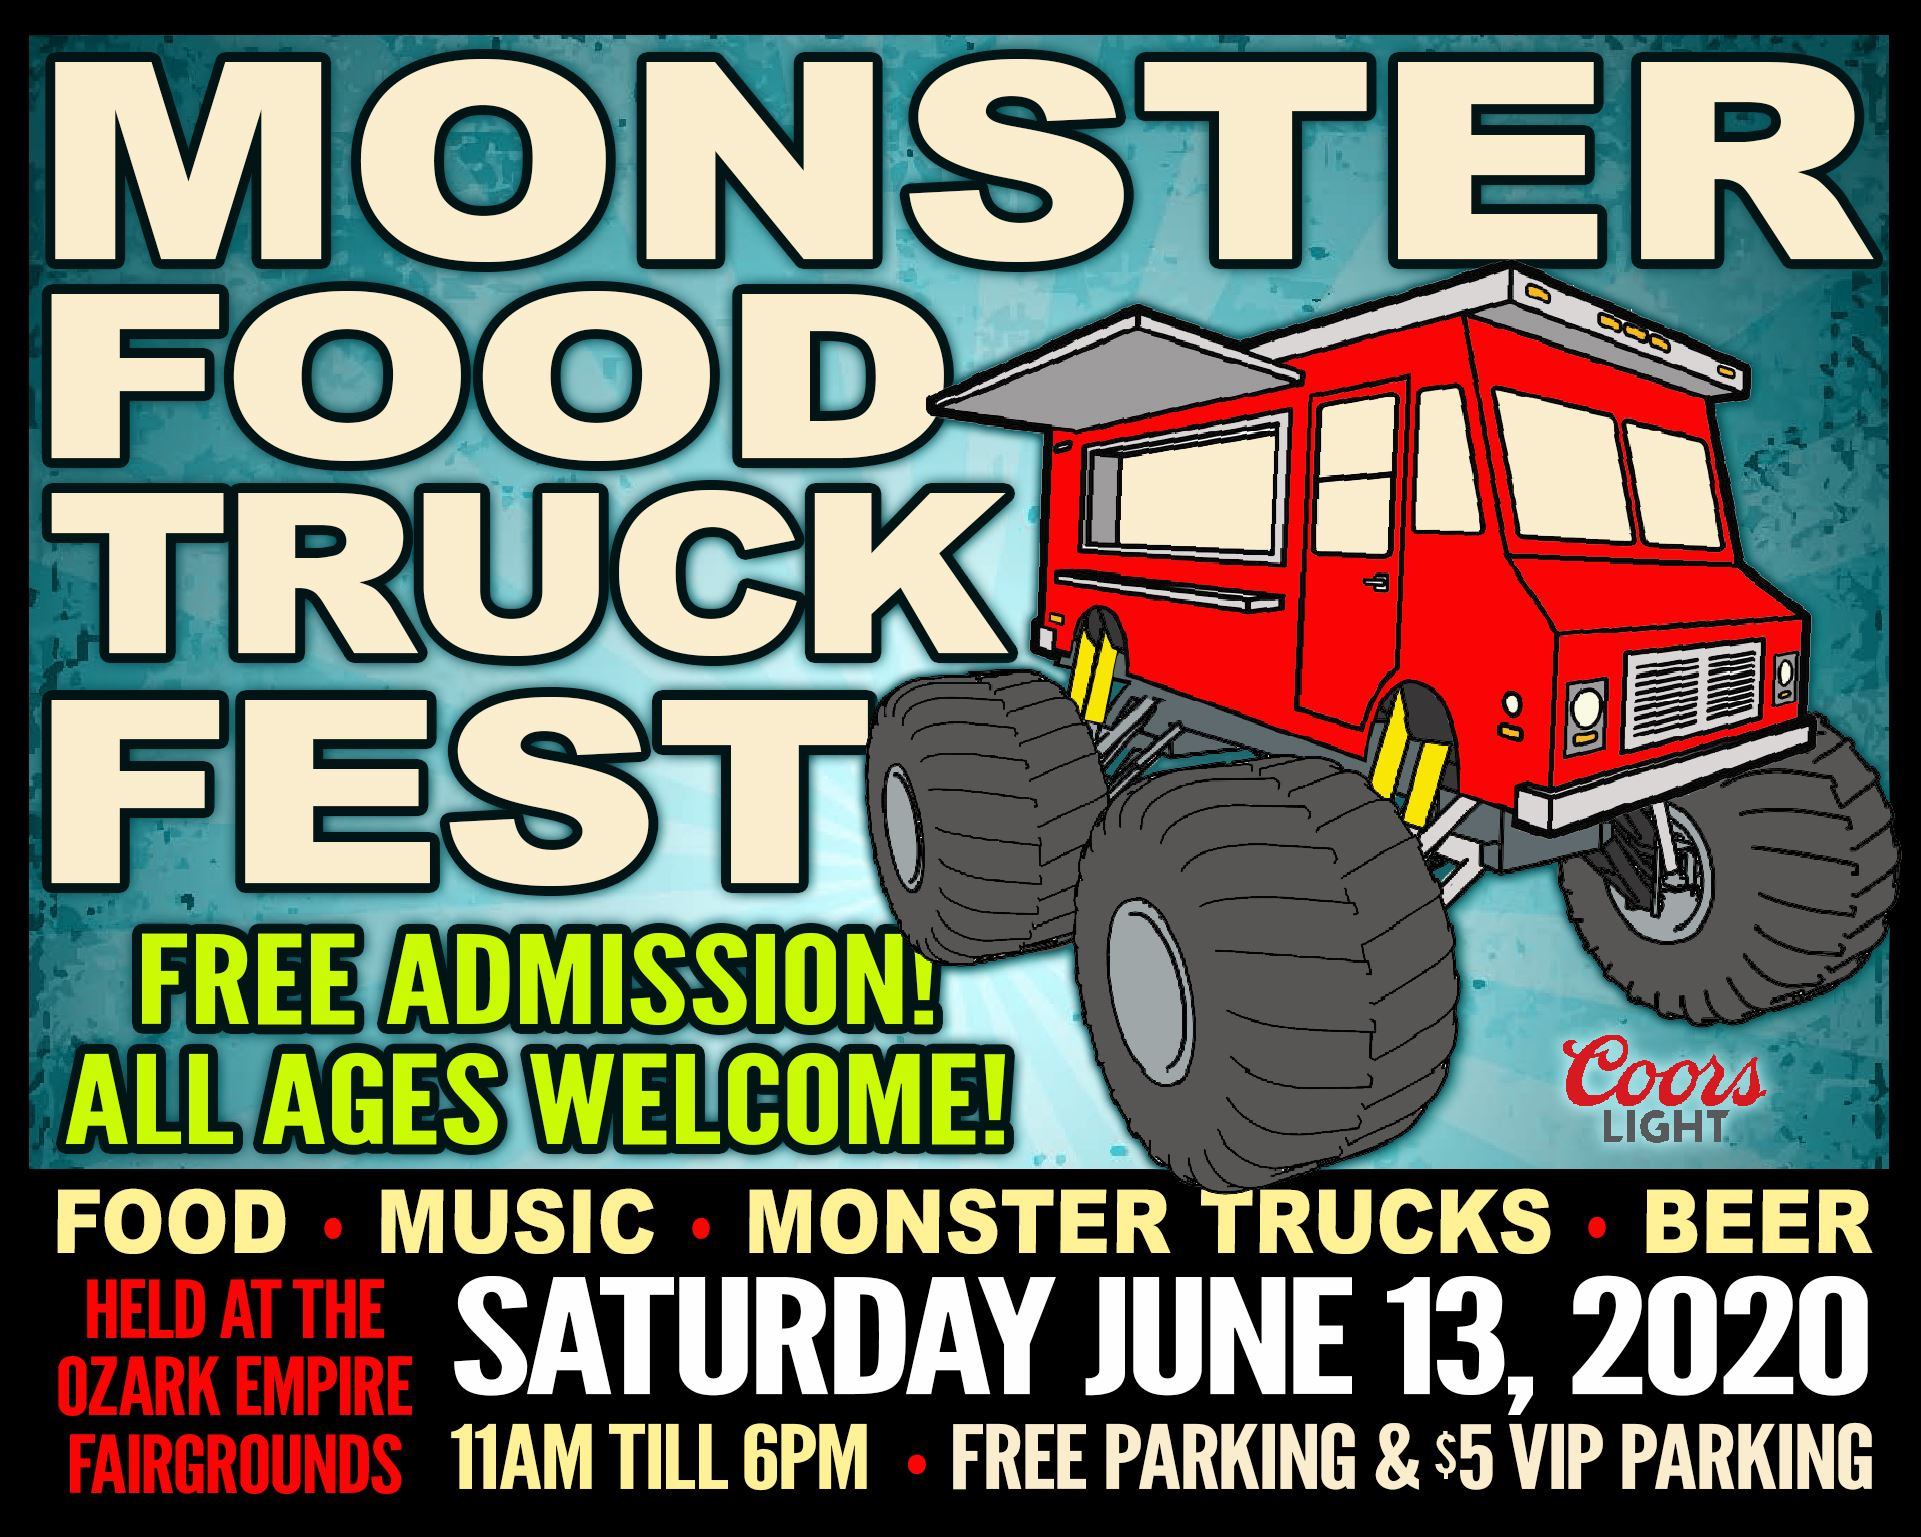 Red Food Truck clipart with Monster Truck tires.